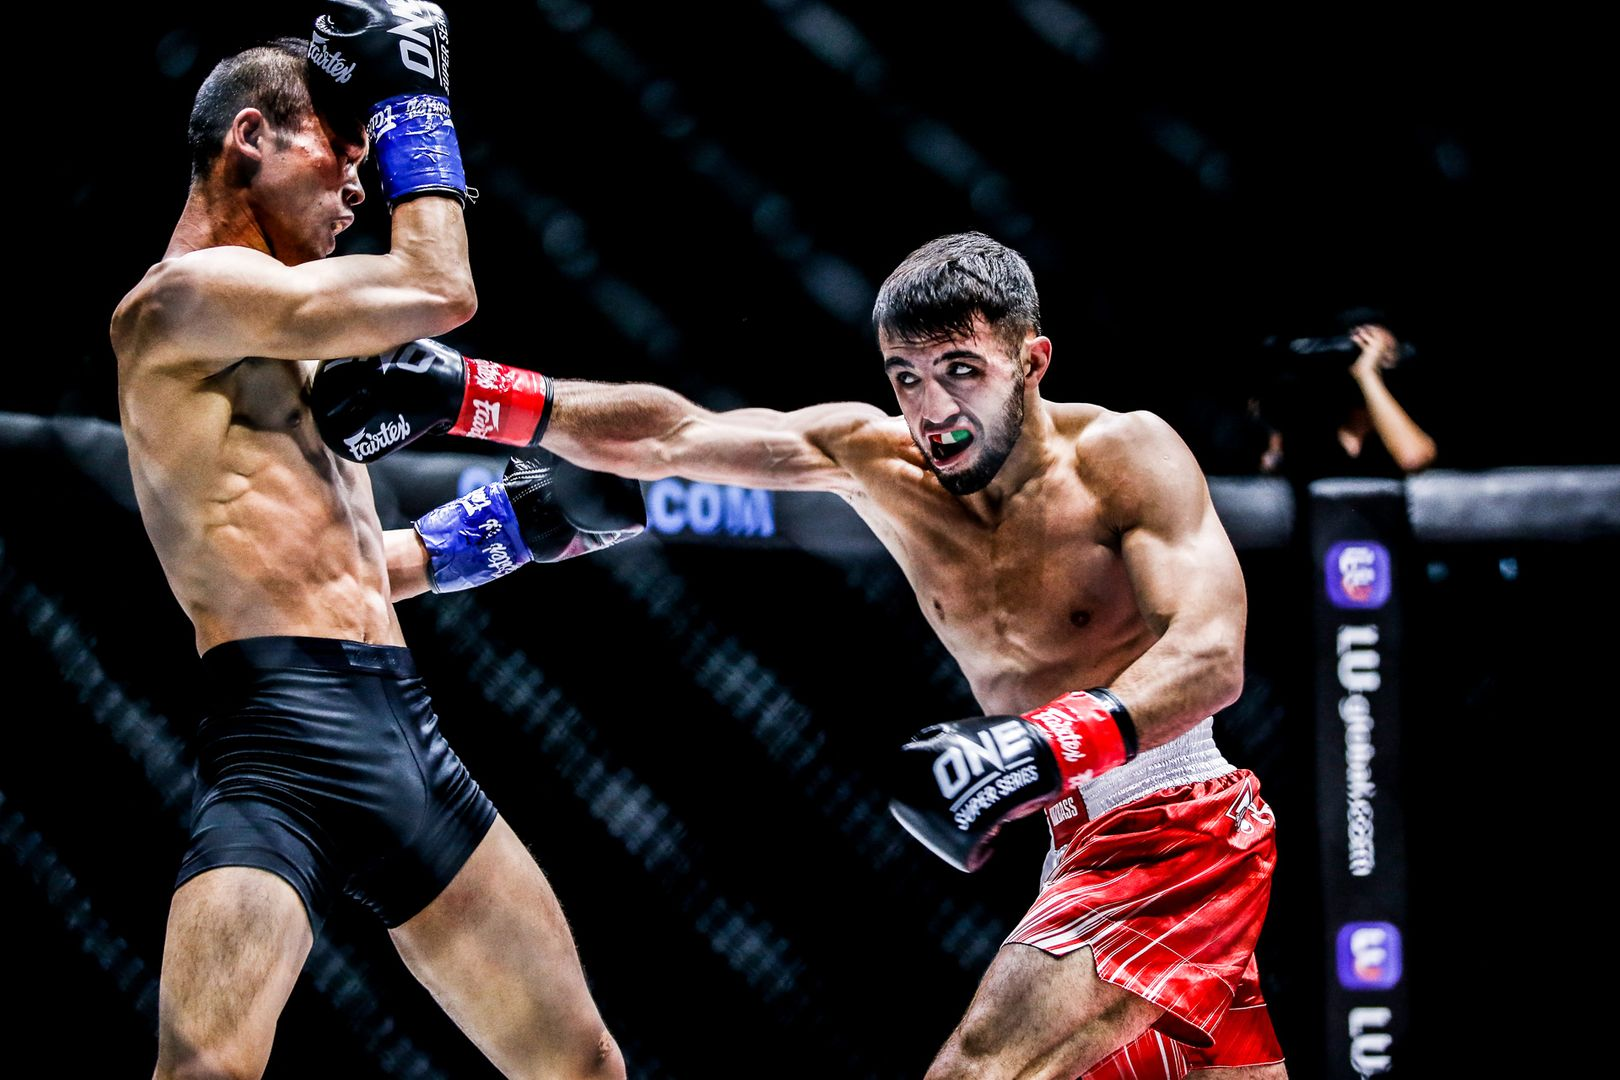 Russian fighter Aslanbek Zikreev fights former ONE World Title challenger Wang Junguang in a kickboxing match at ONE: INSIDE THE MATRIX IV